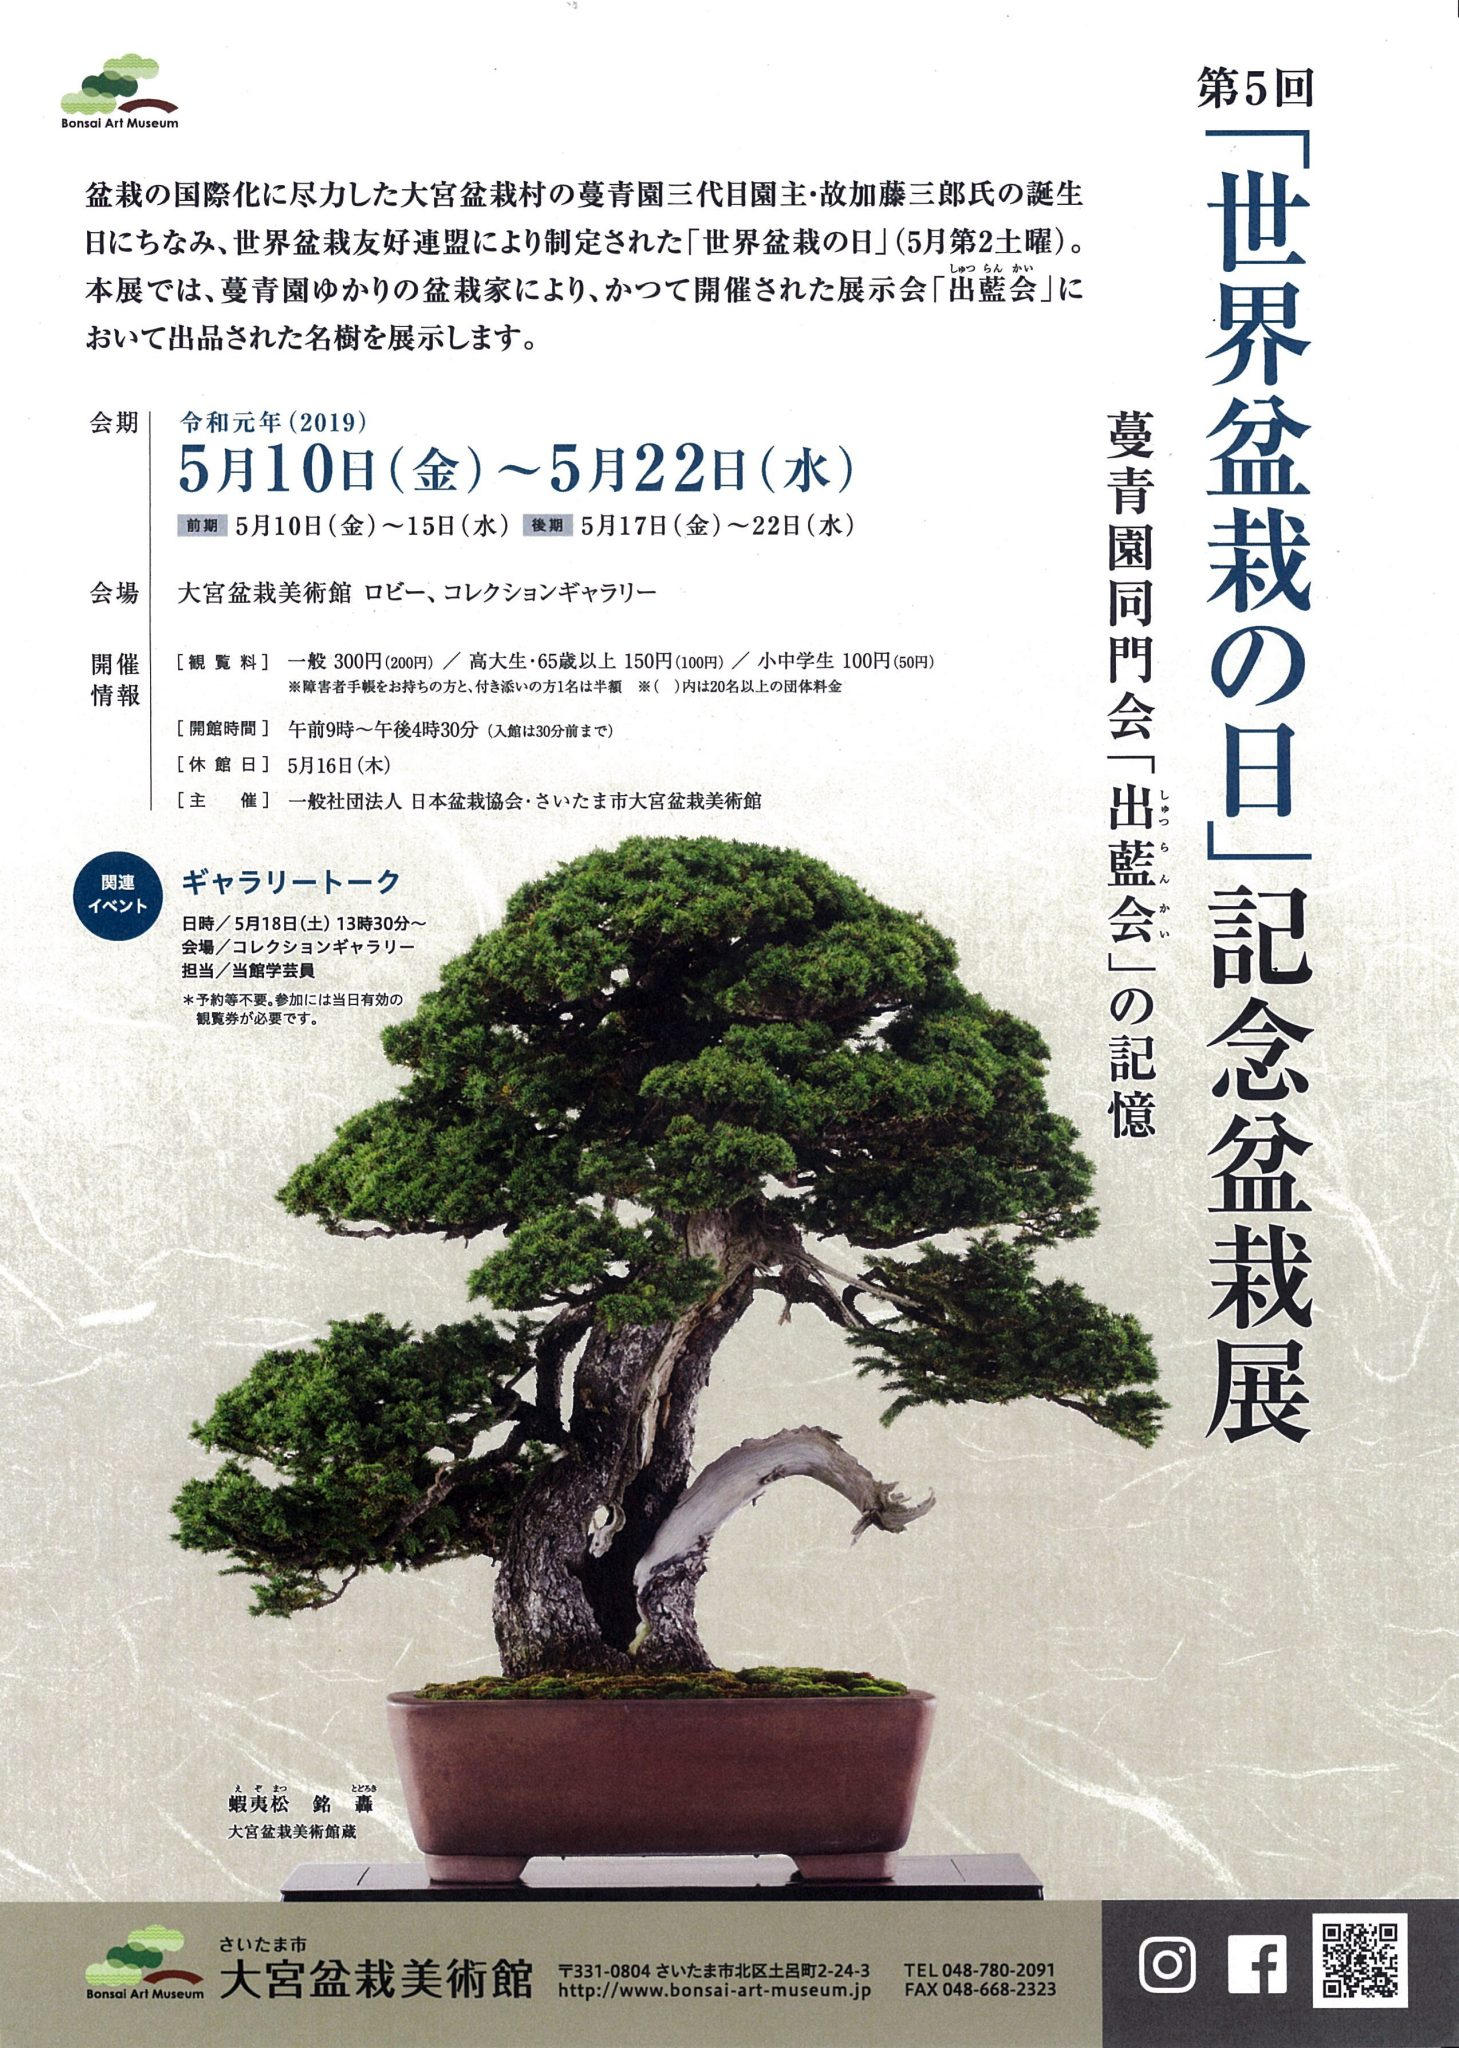 The 5th World Bonsai Day commemoration Bonsai Exhibition